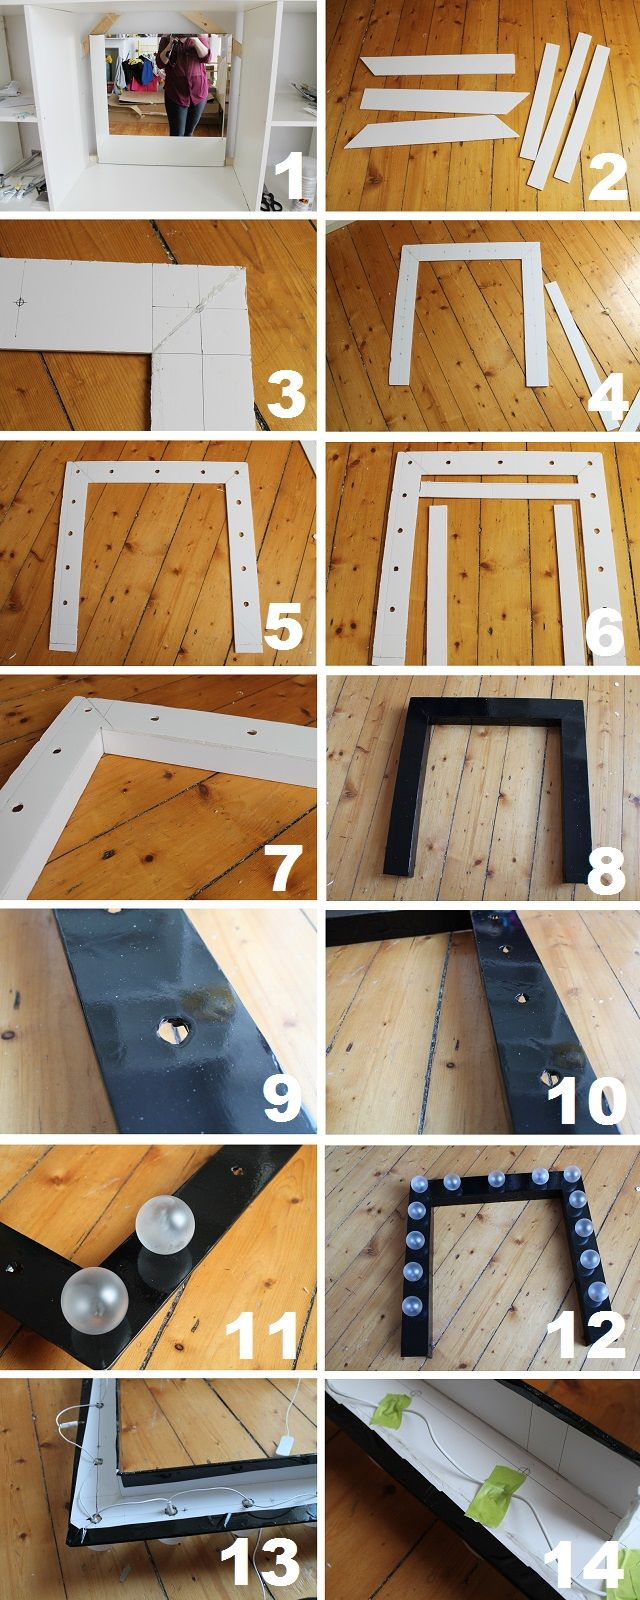 DIY Dressing Room Vanity Mirror I love this idea probably better than any other vanity mirror idea's I found but instead of the  black masking tape I would use a nice glossy paint if that would work on the foam board which I've never used before so idk how that would look but I will find out.